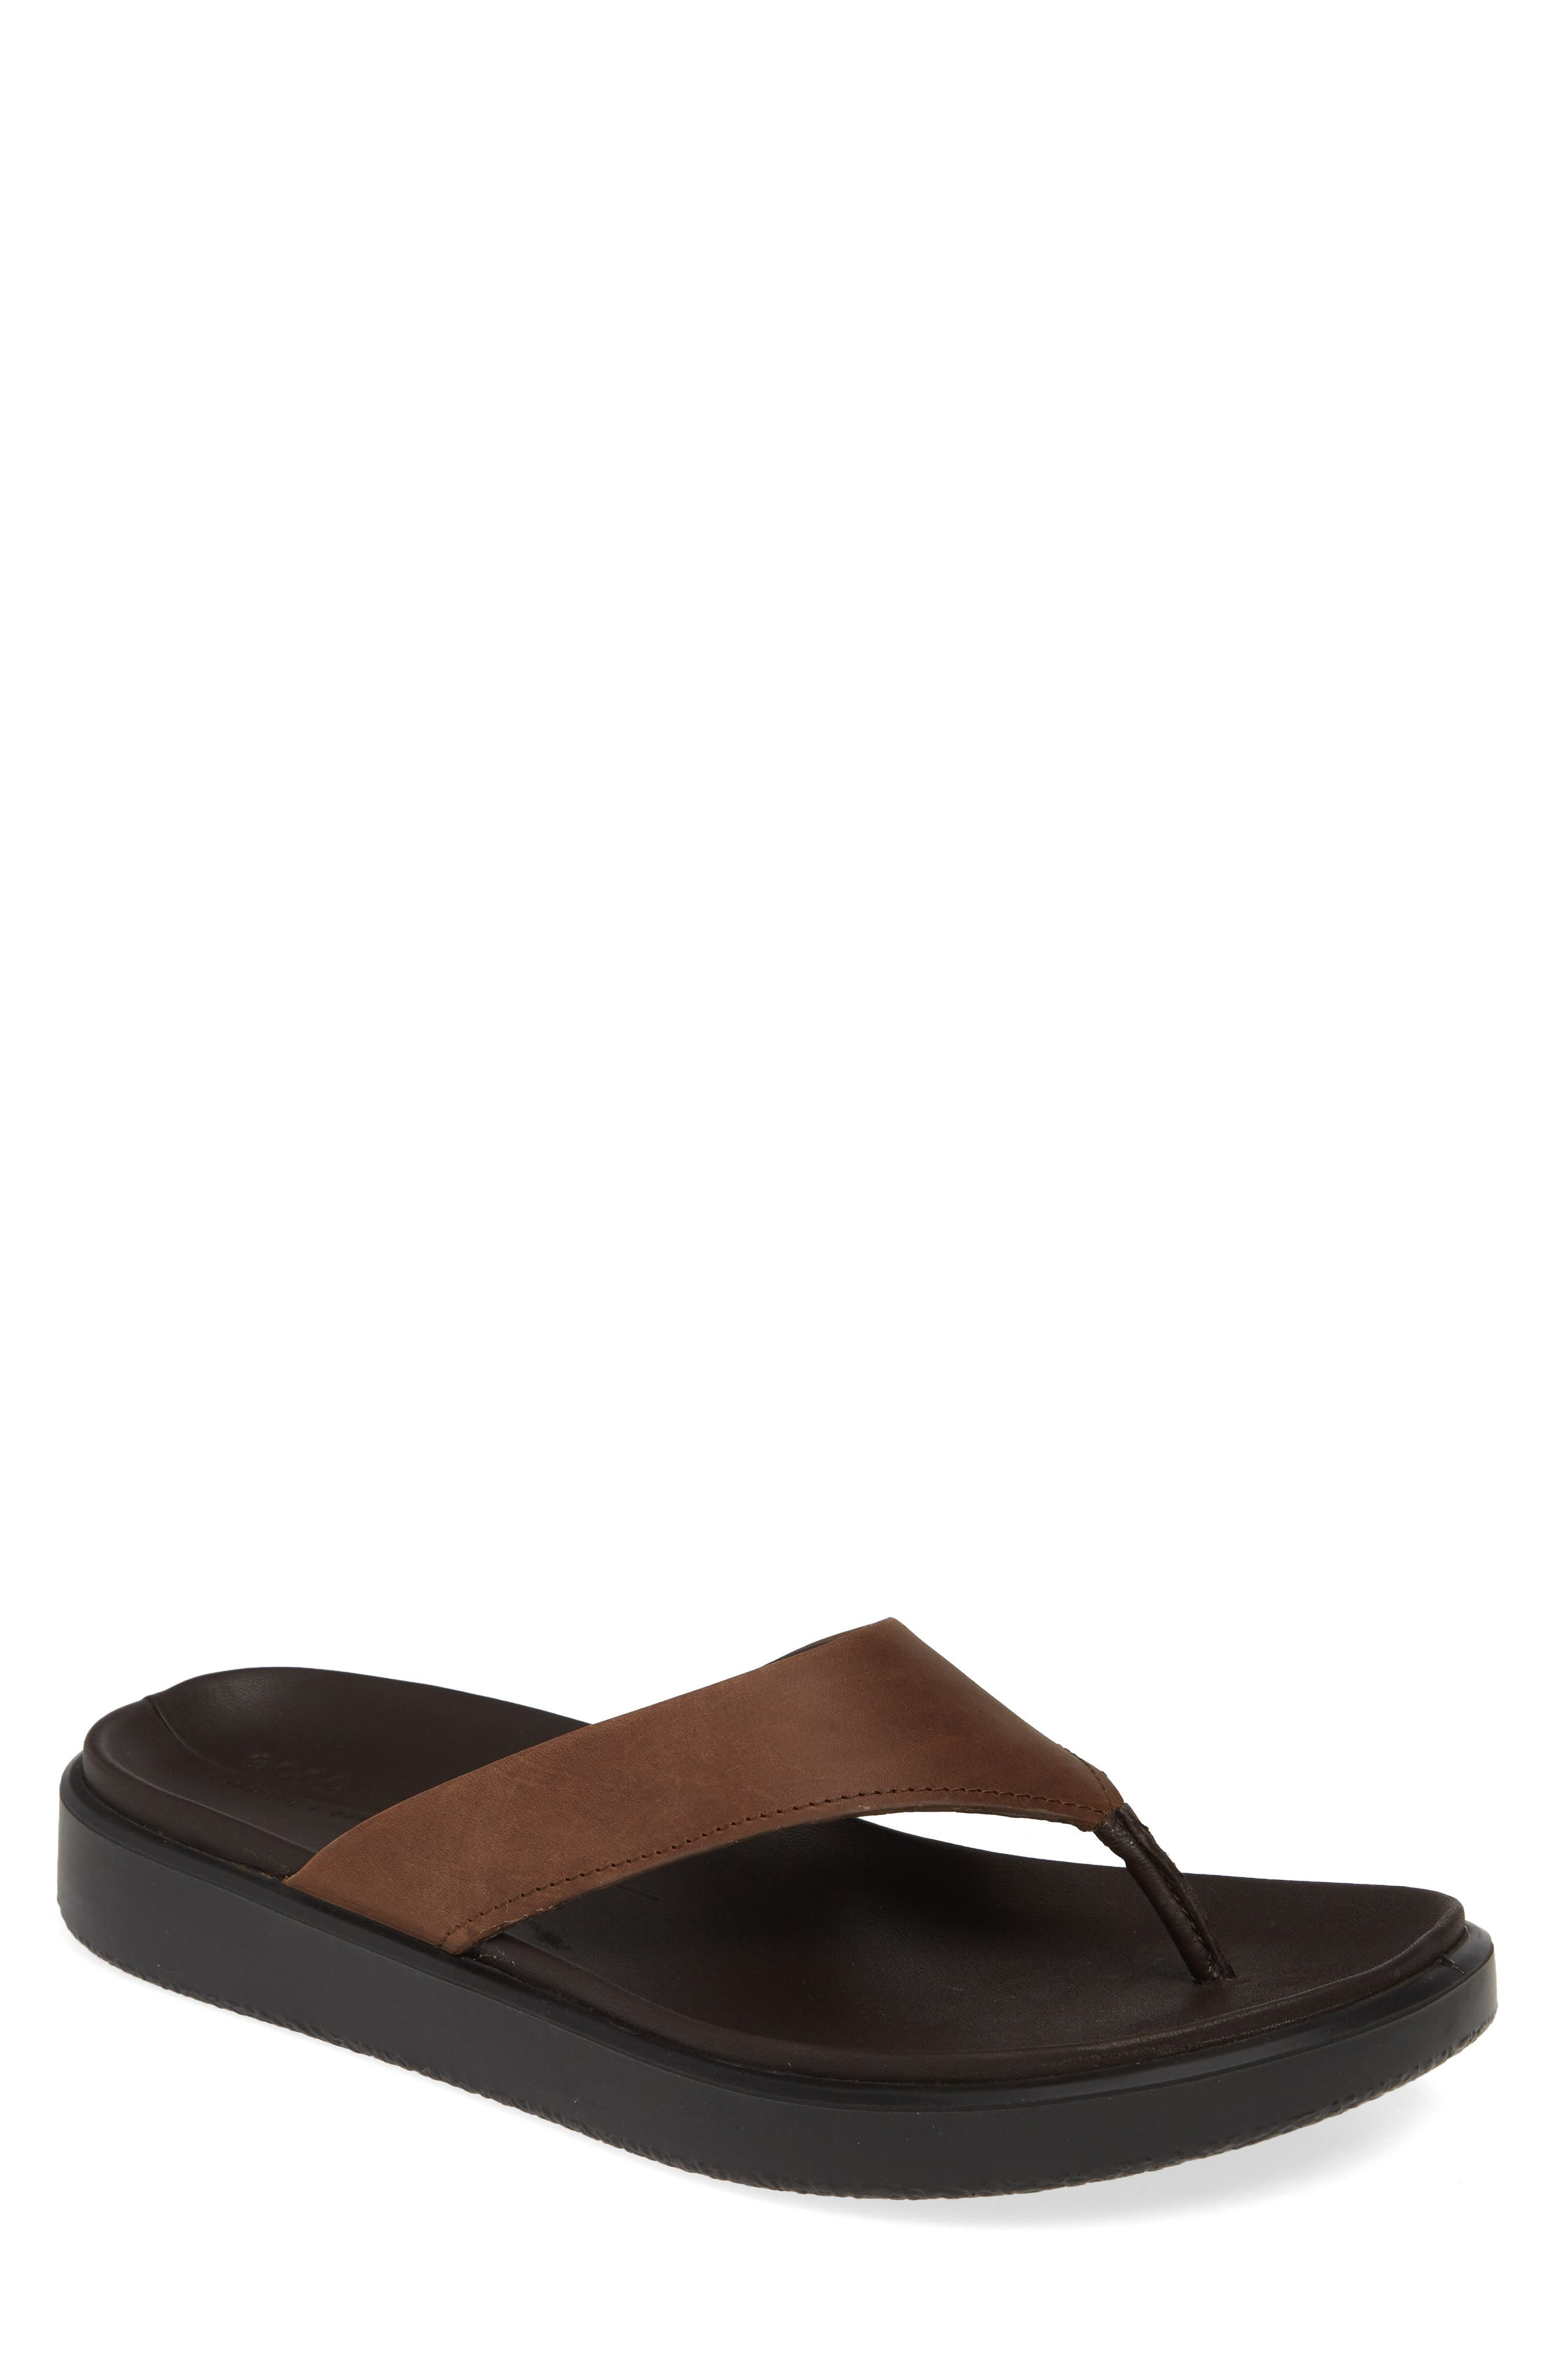 ECCO, Flowt LX Flip Flop, Main thumbnail 1, color, COCOA BROWN OILED NUBUCK